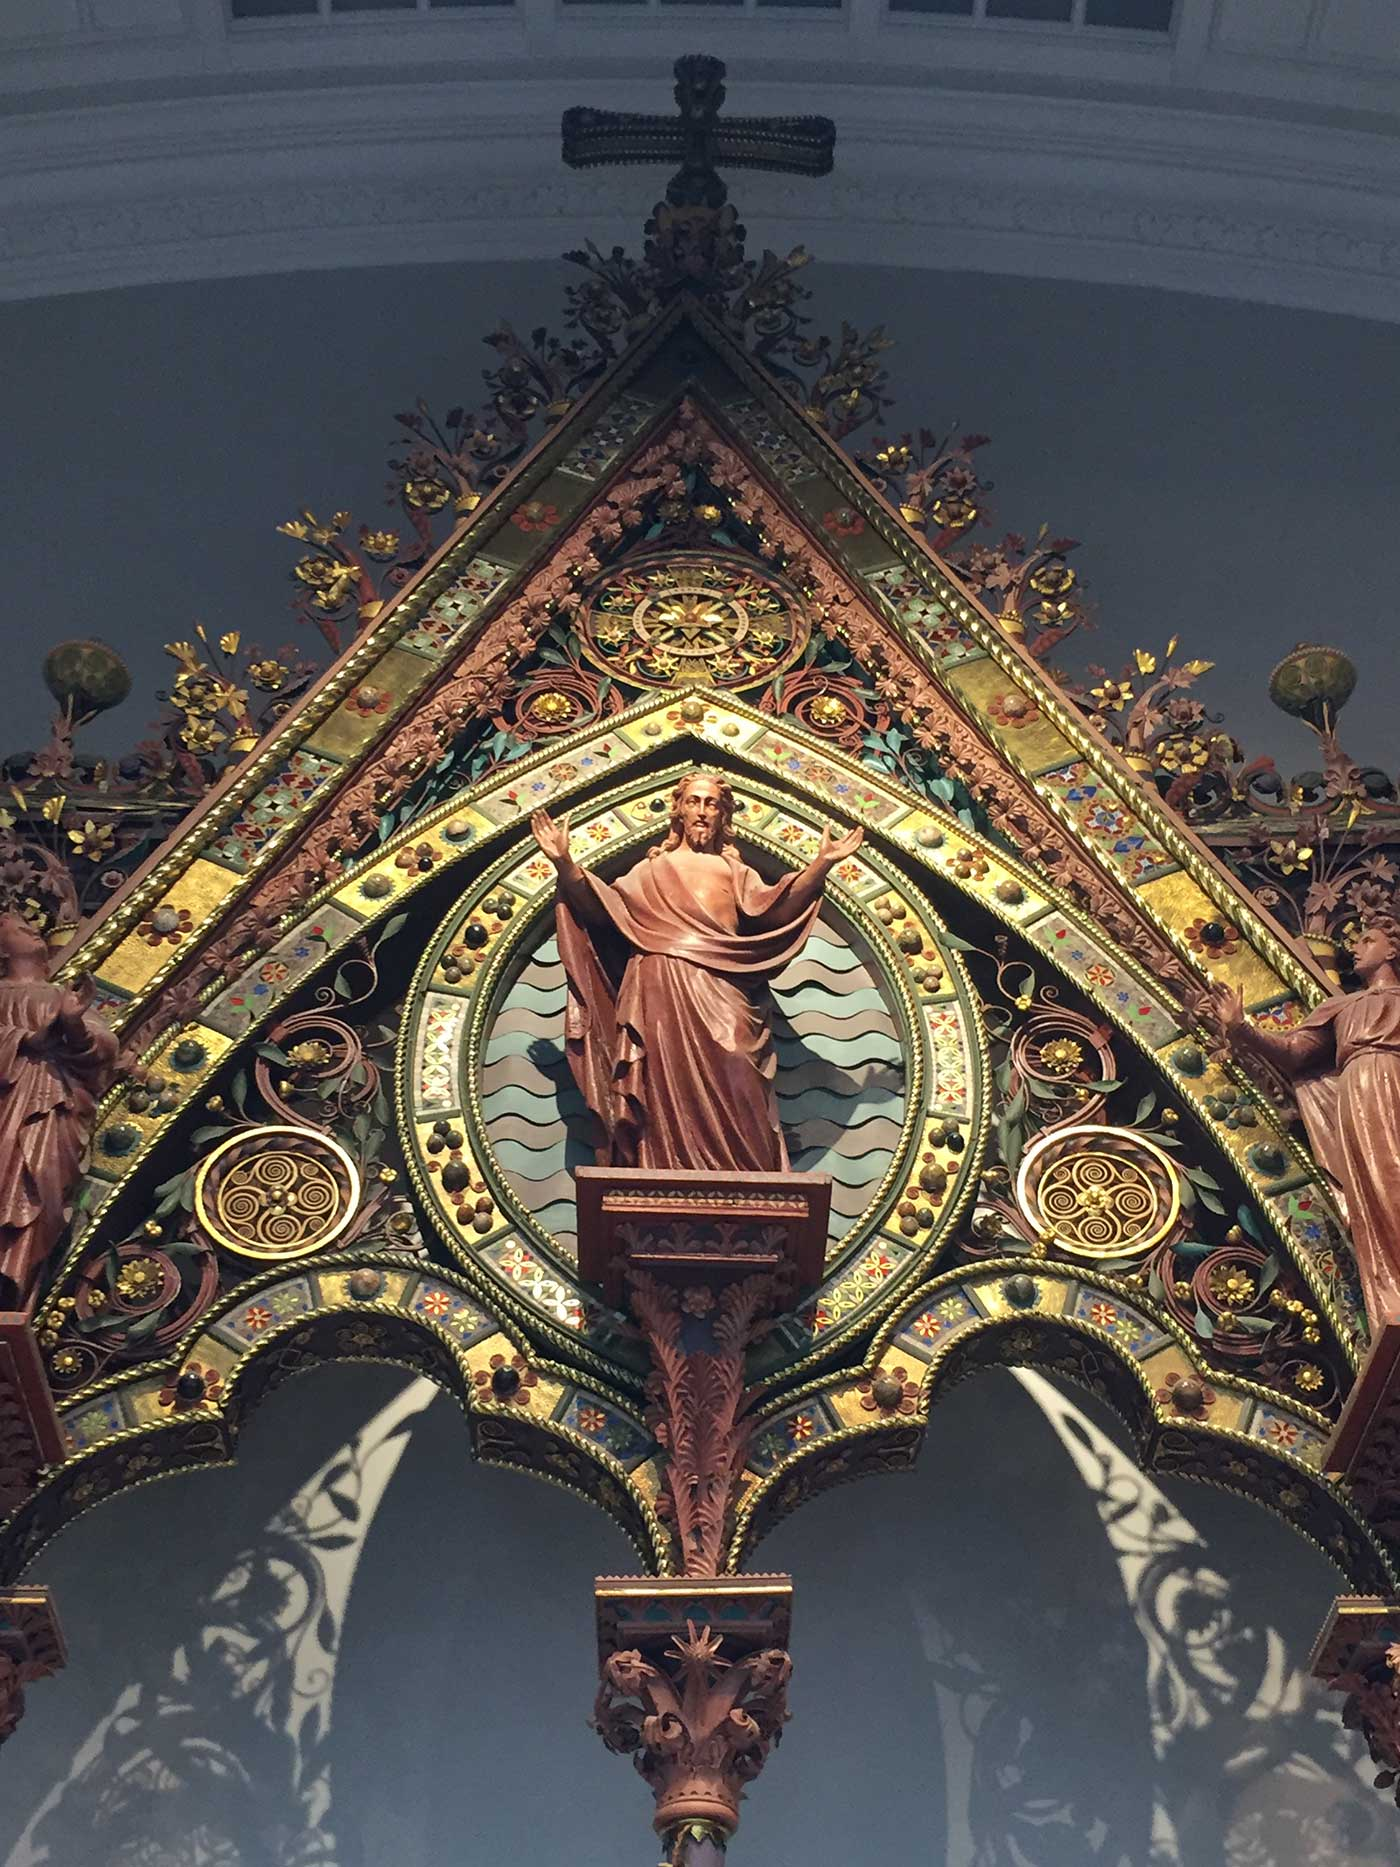 Christ in Majesty, Hereford Choir Screen, George Gilbert Scott 1862